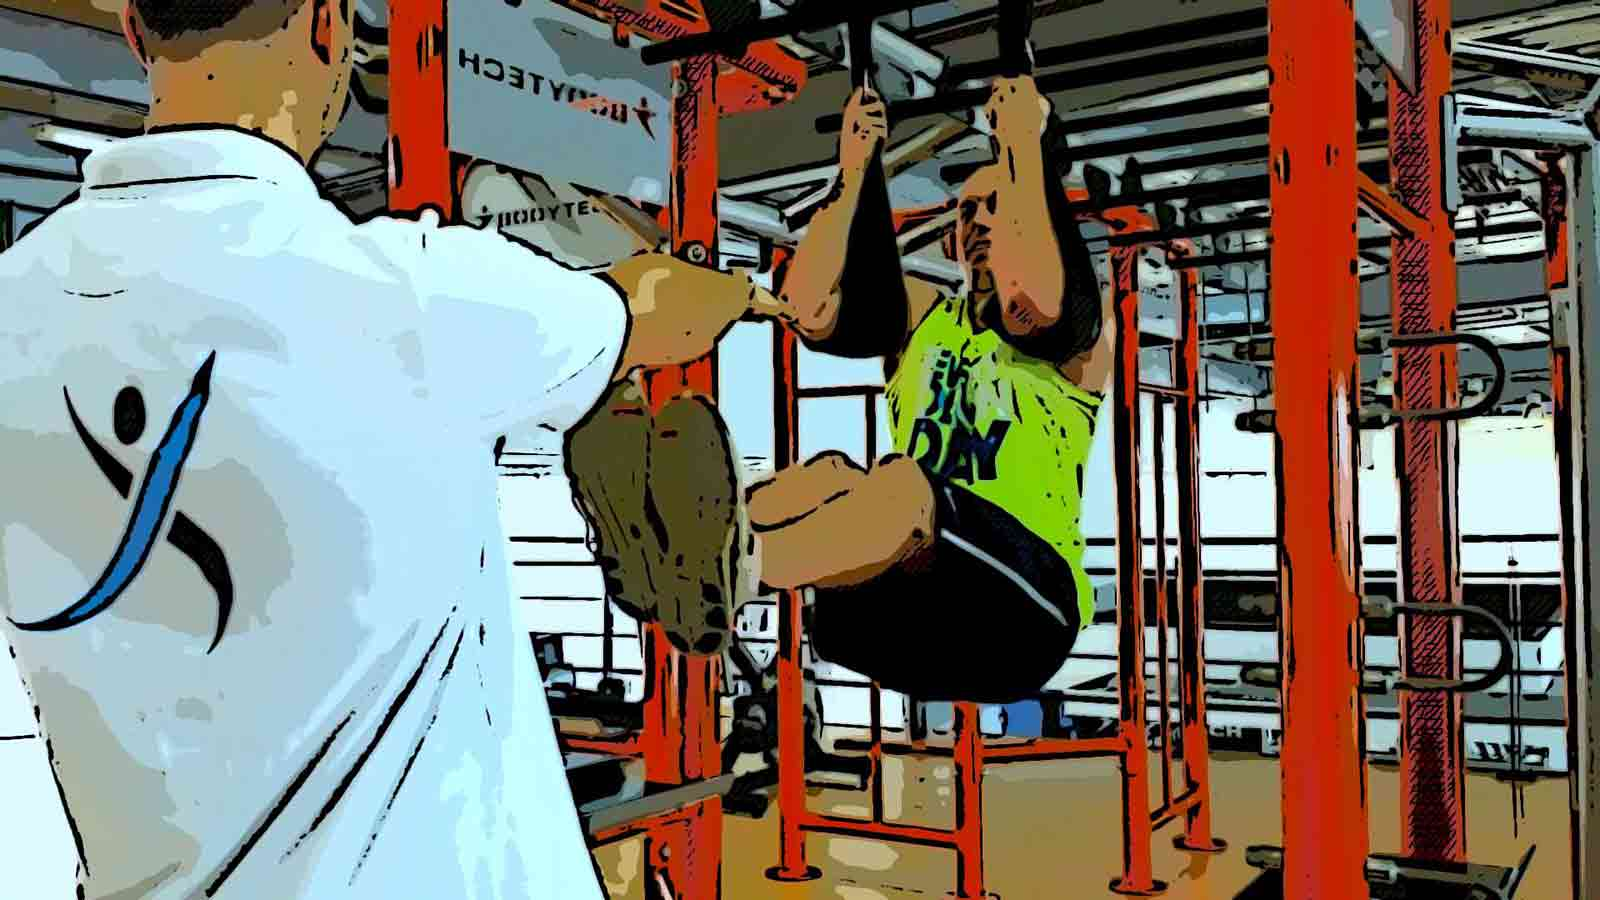 Nccpt vs nasm battle of the modern certifications ptpioneer the nasm certification xflitez Gallery